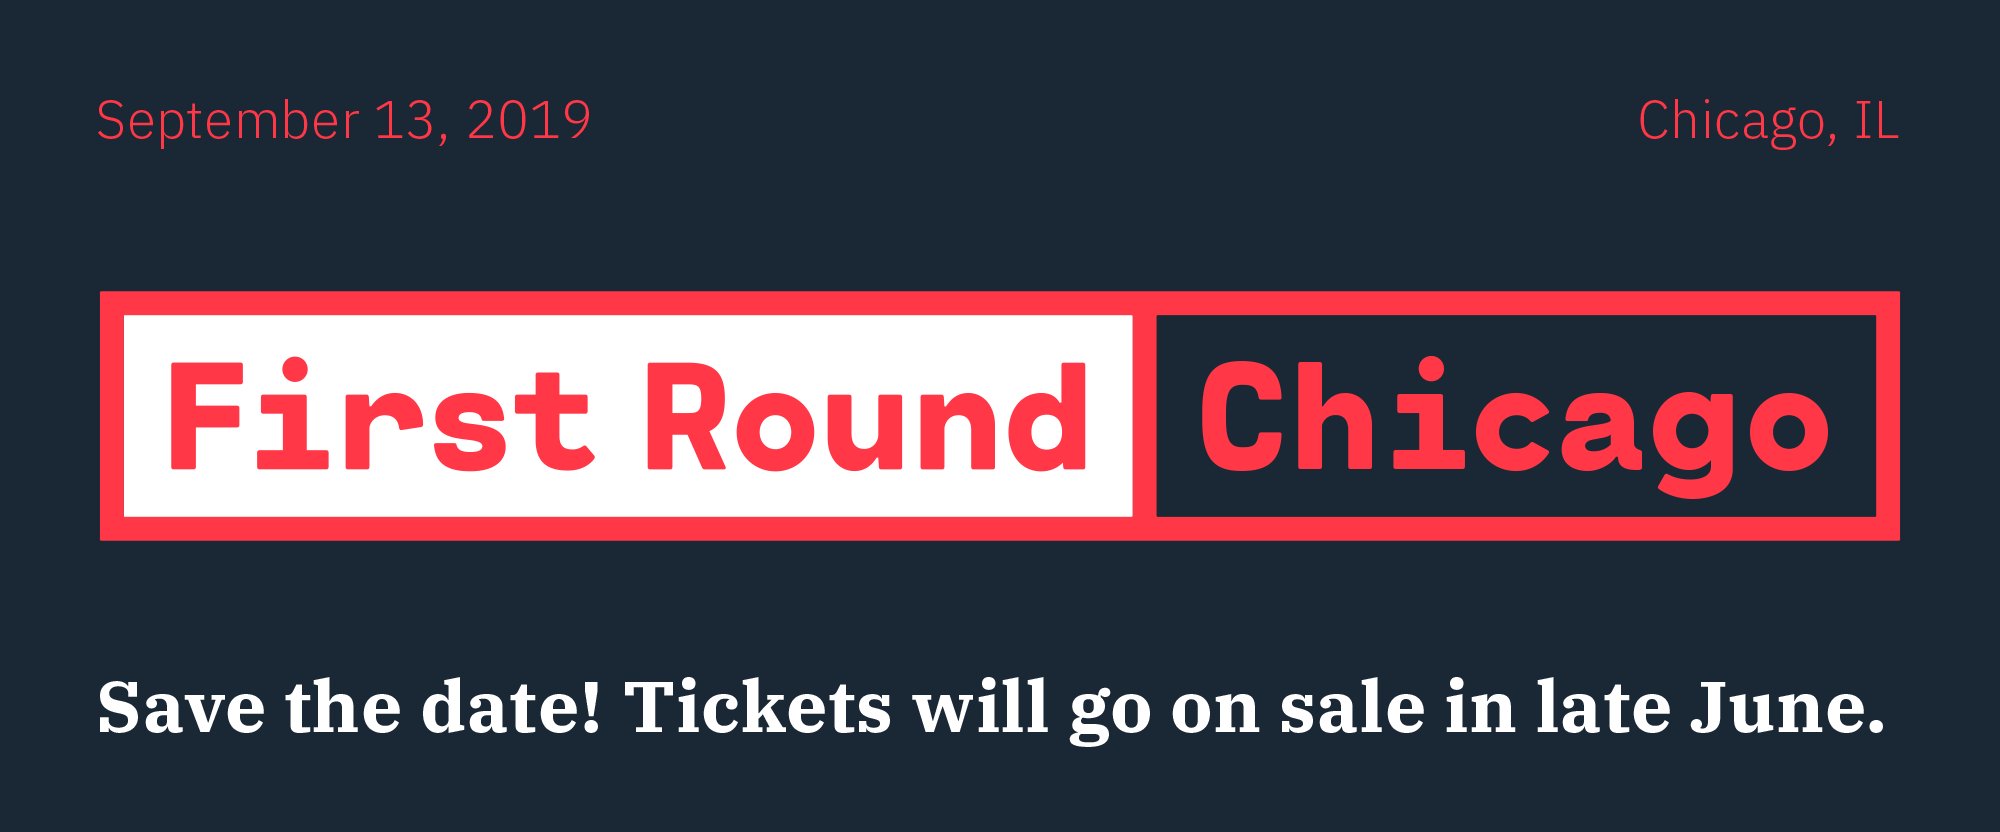 First Round 2019 - Chicago: Save the Date